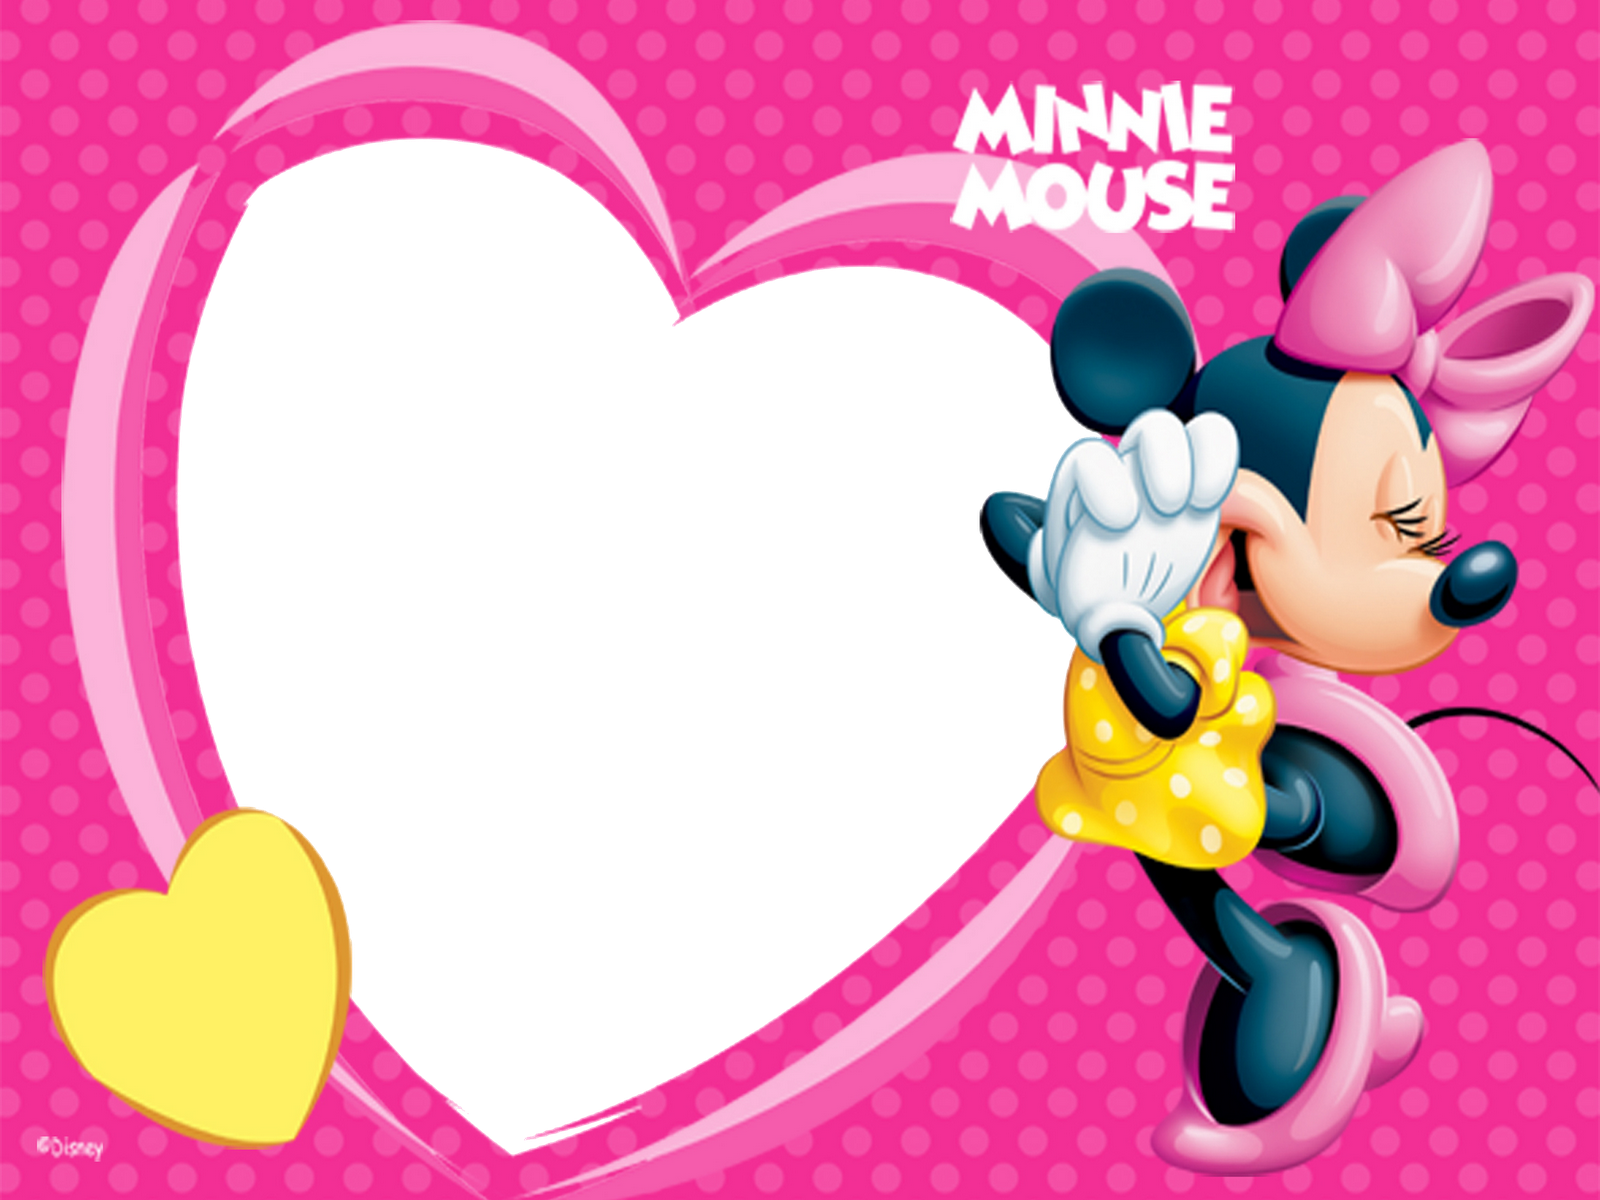 minnie mouse image wallpaper for fb cover cartoons